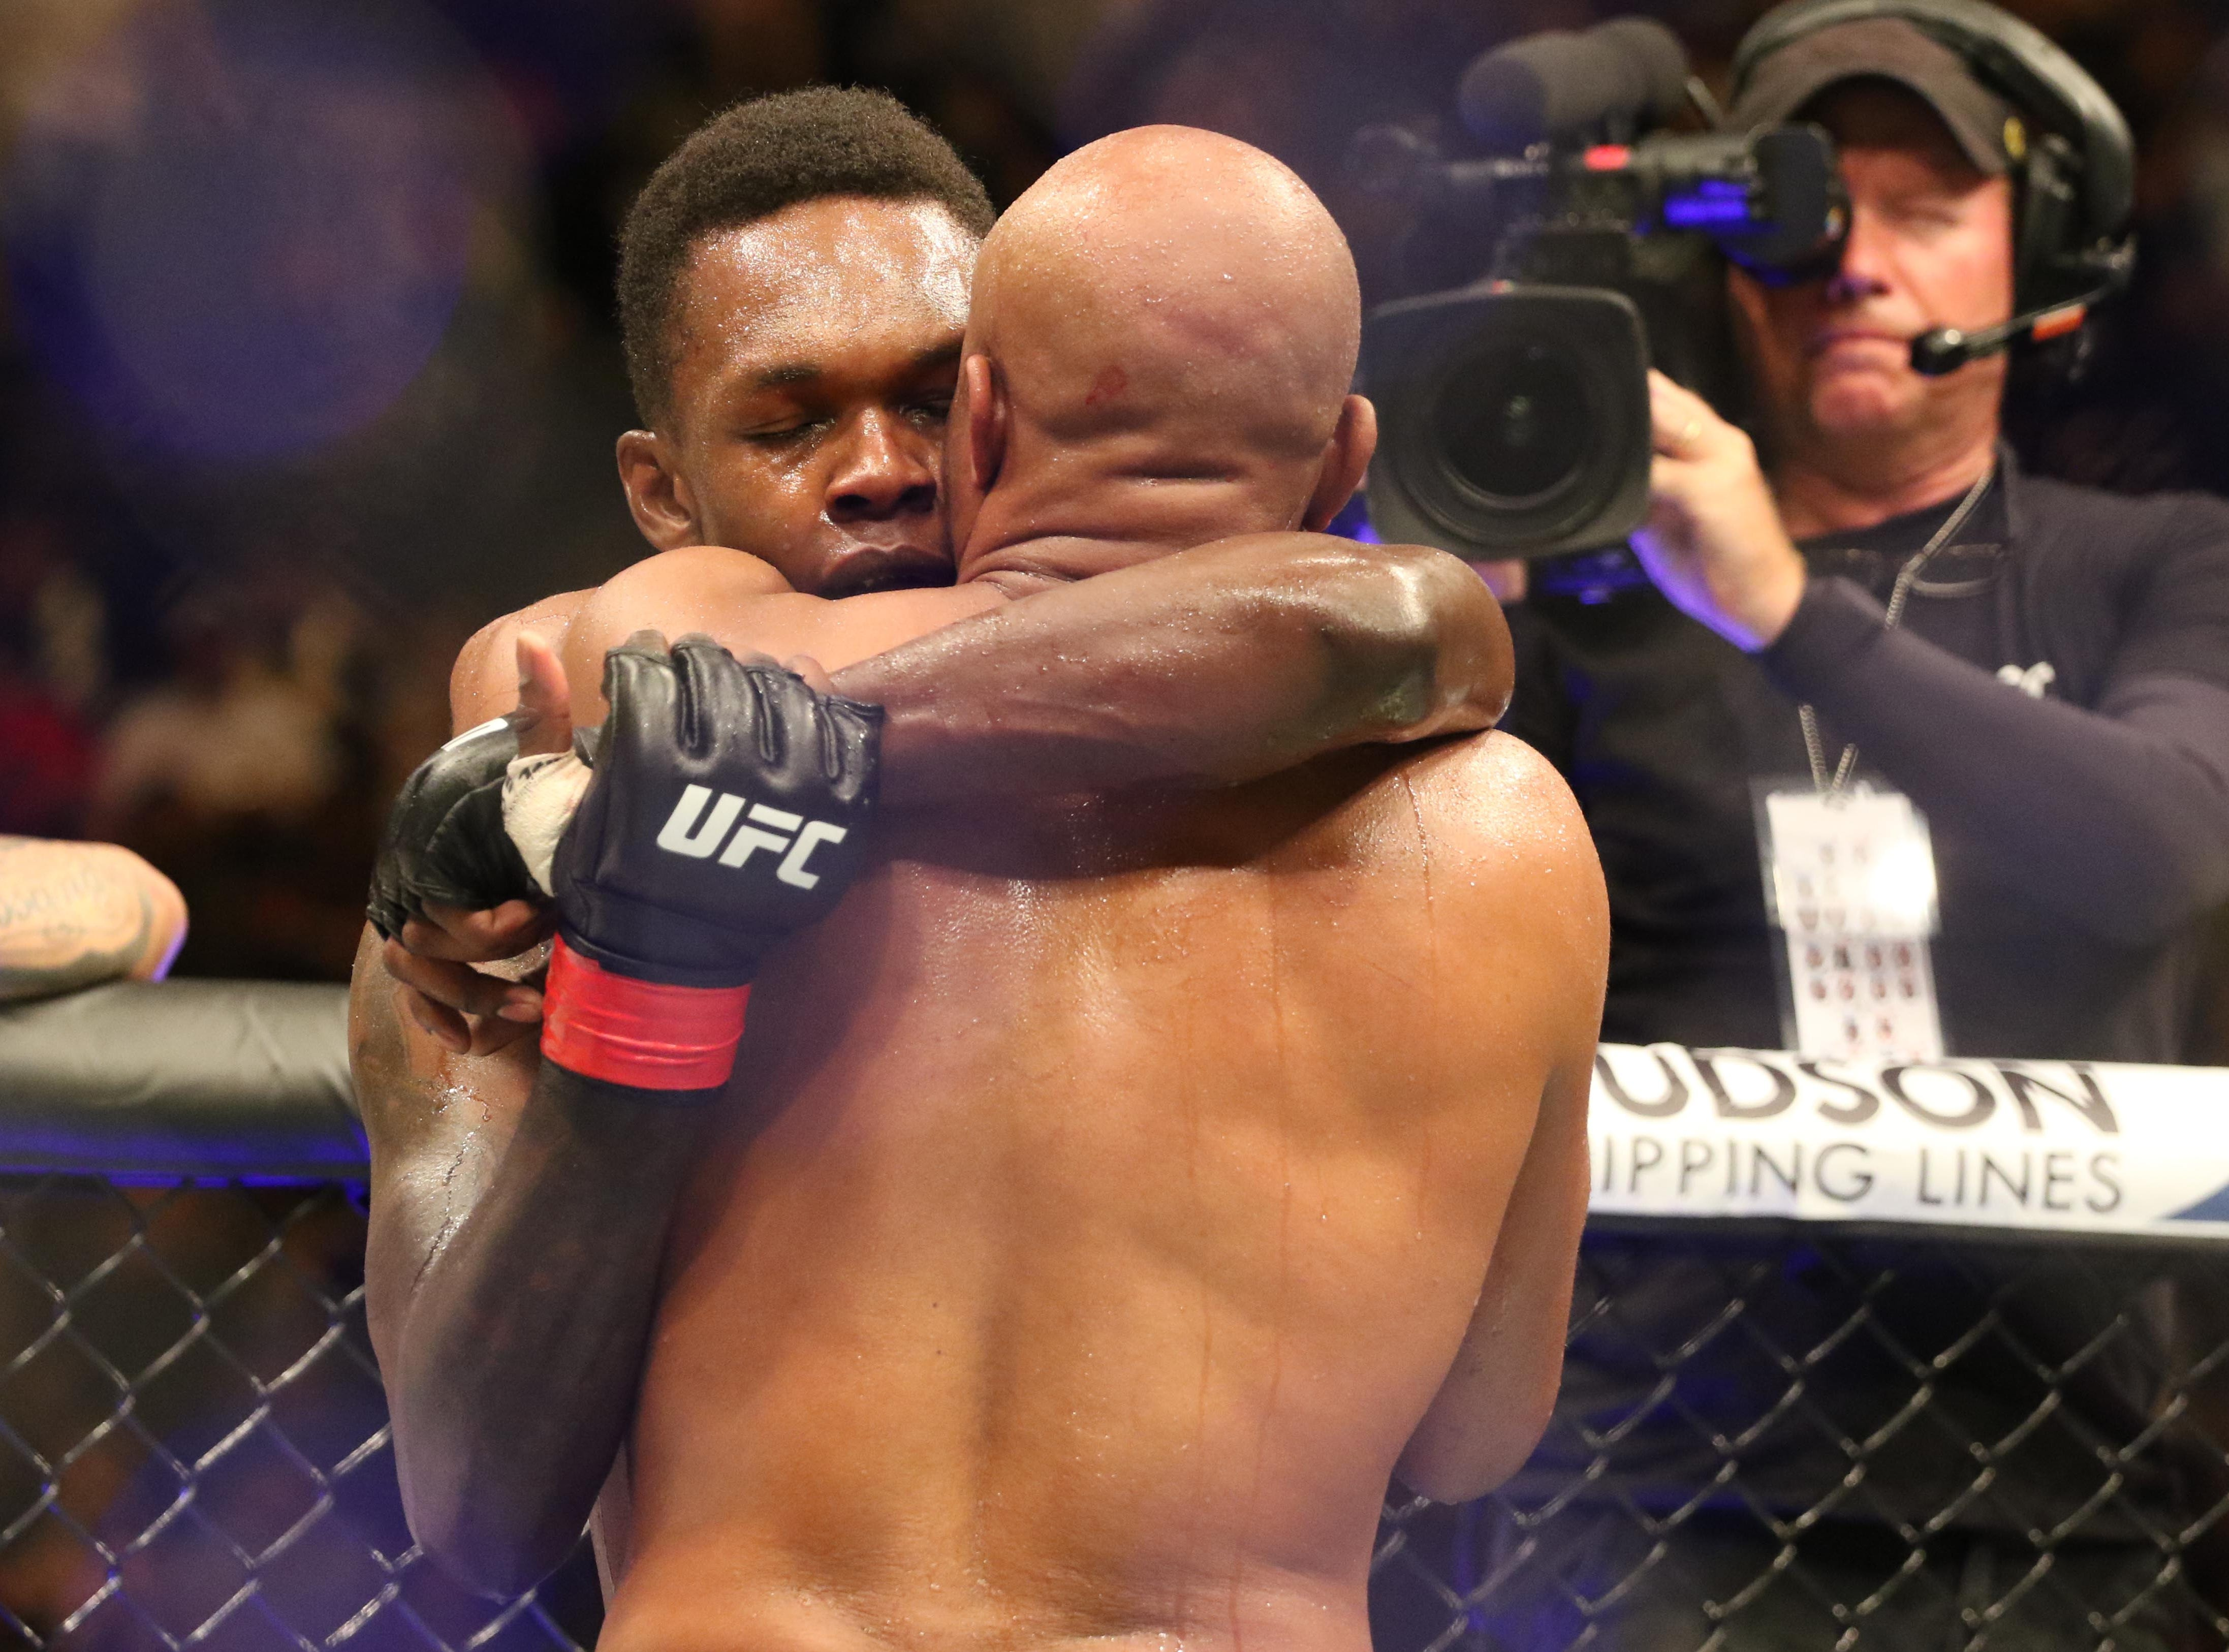 Israel Adesanya (red gloves) defeats Anderson Silva (blue gloves) during UFC 234 at Rod Laver Arena.